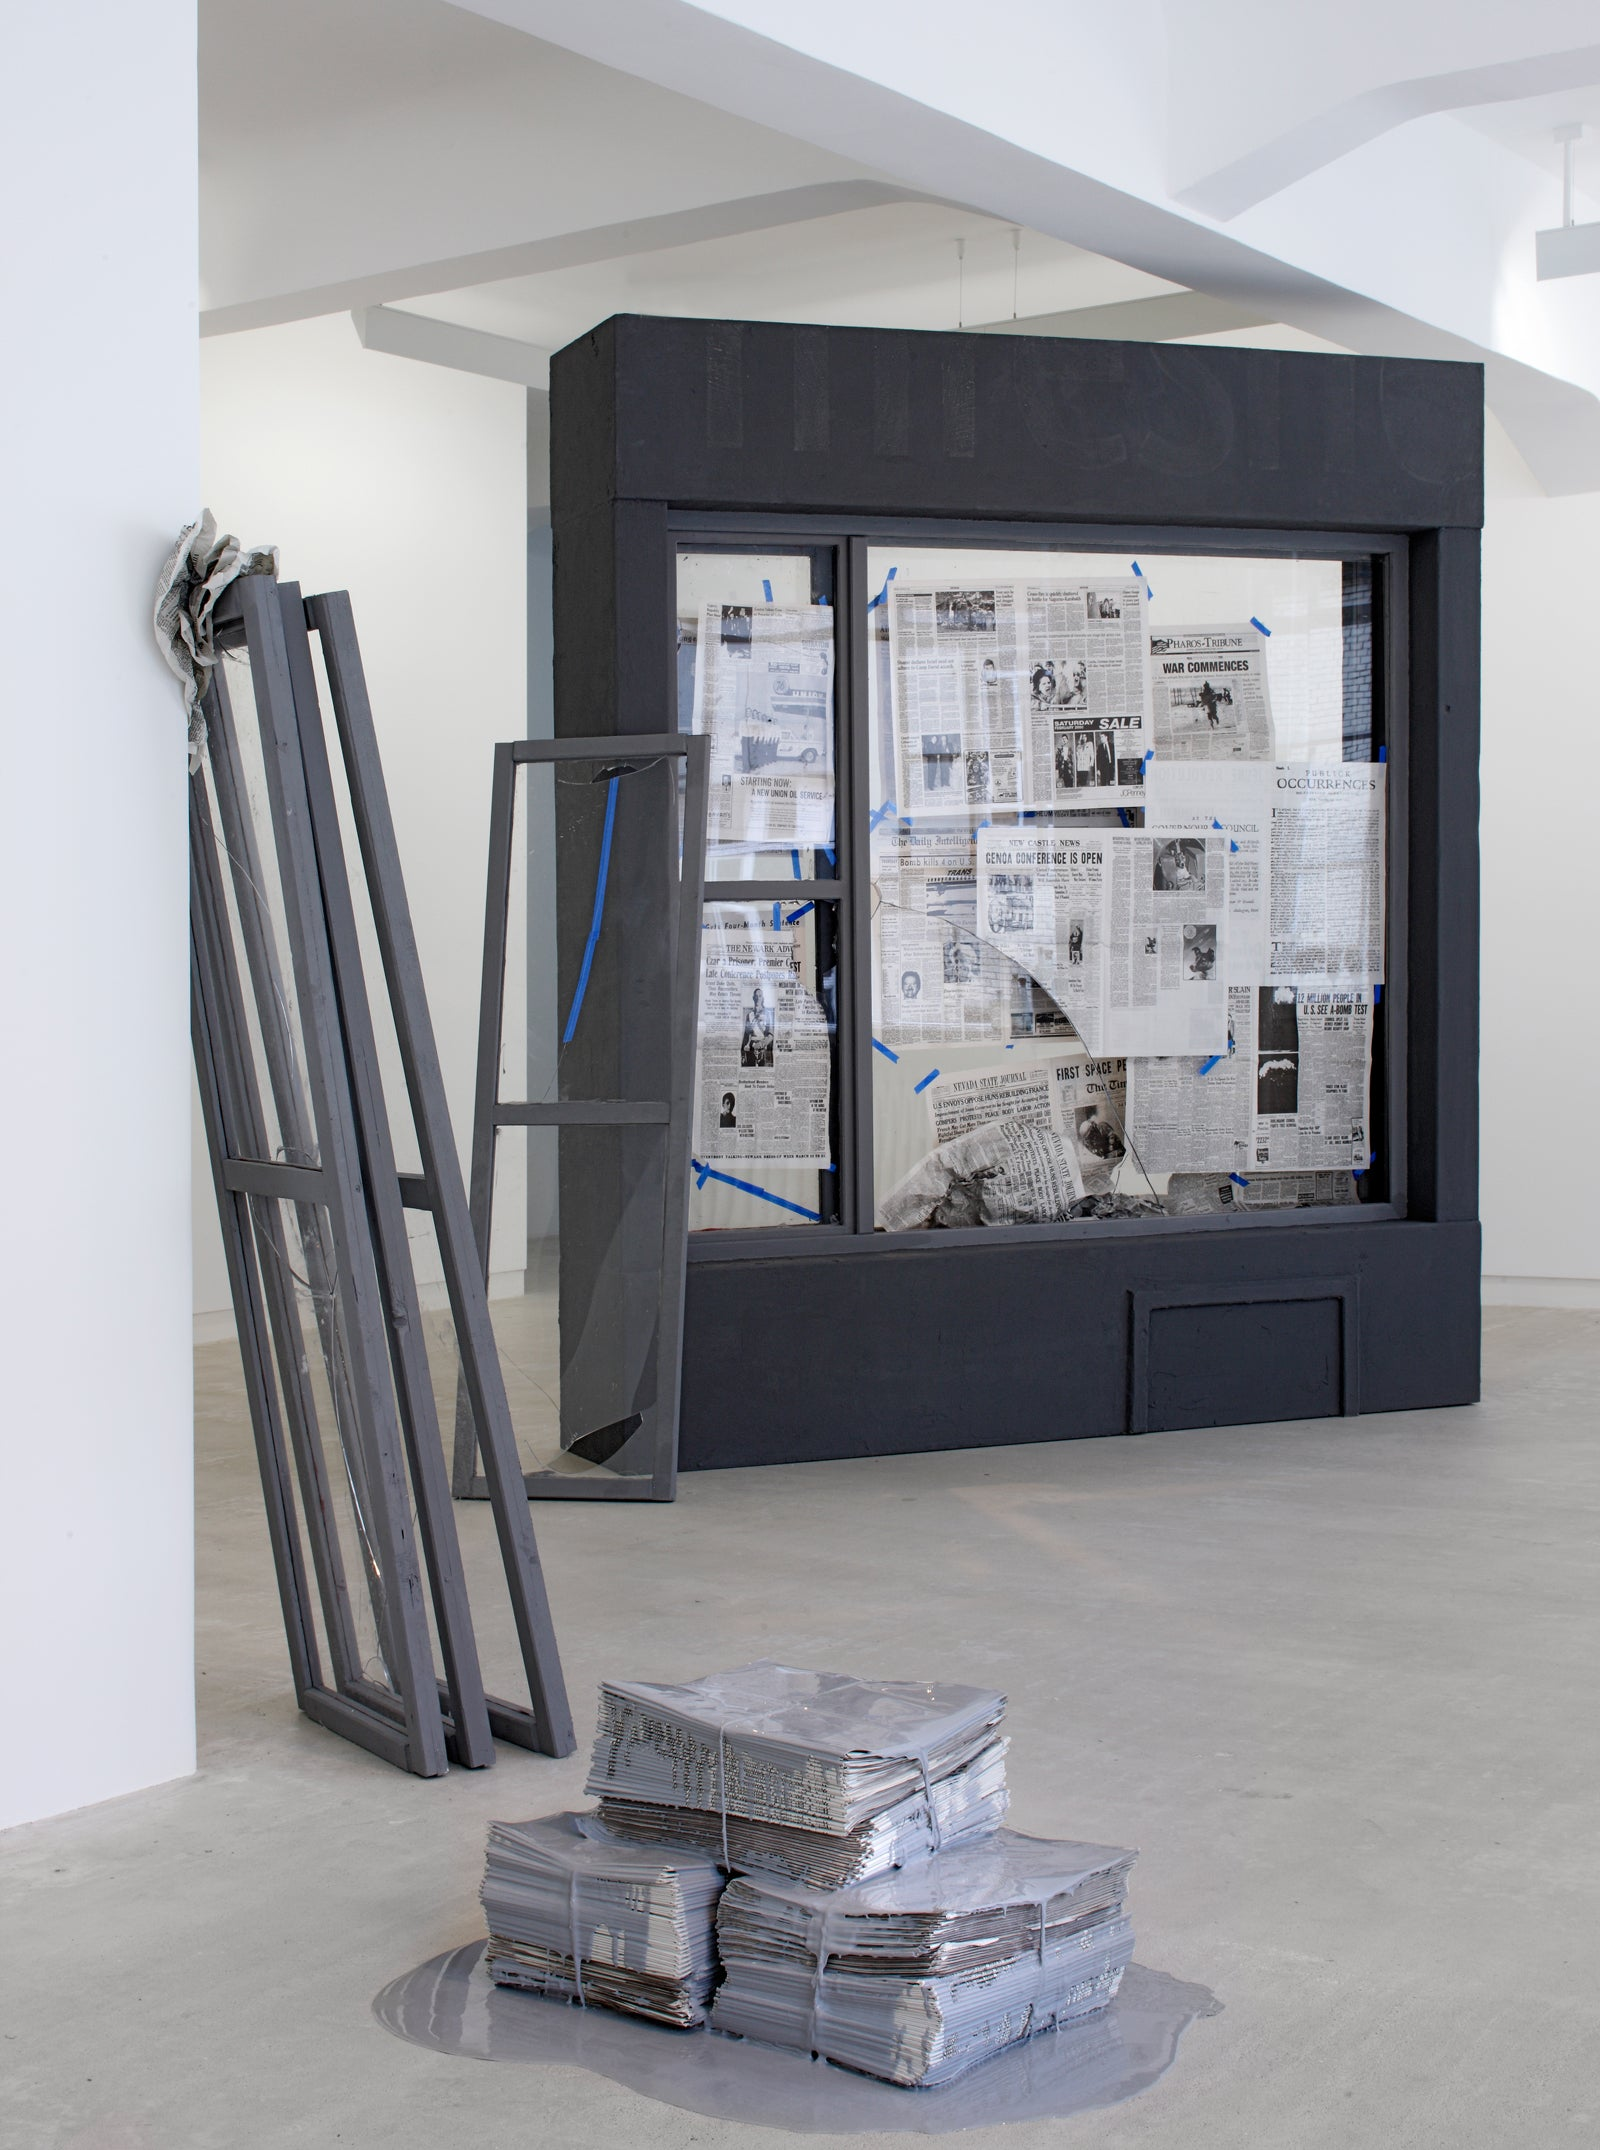 Julieta Aranda, Publick Occurrences Both Forreign and Domestick, Installation view, 2008, Galerie Michael Janssen Berlin